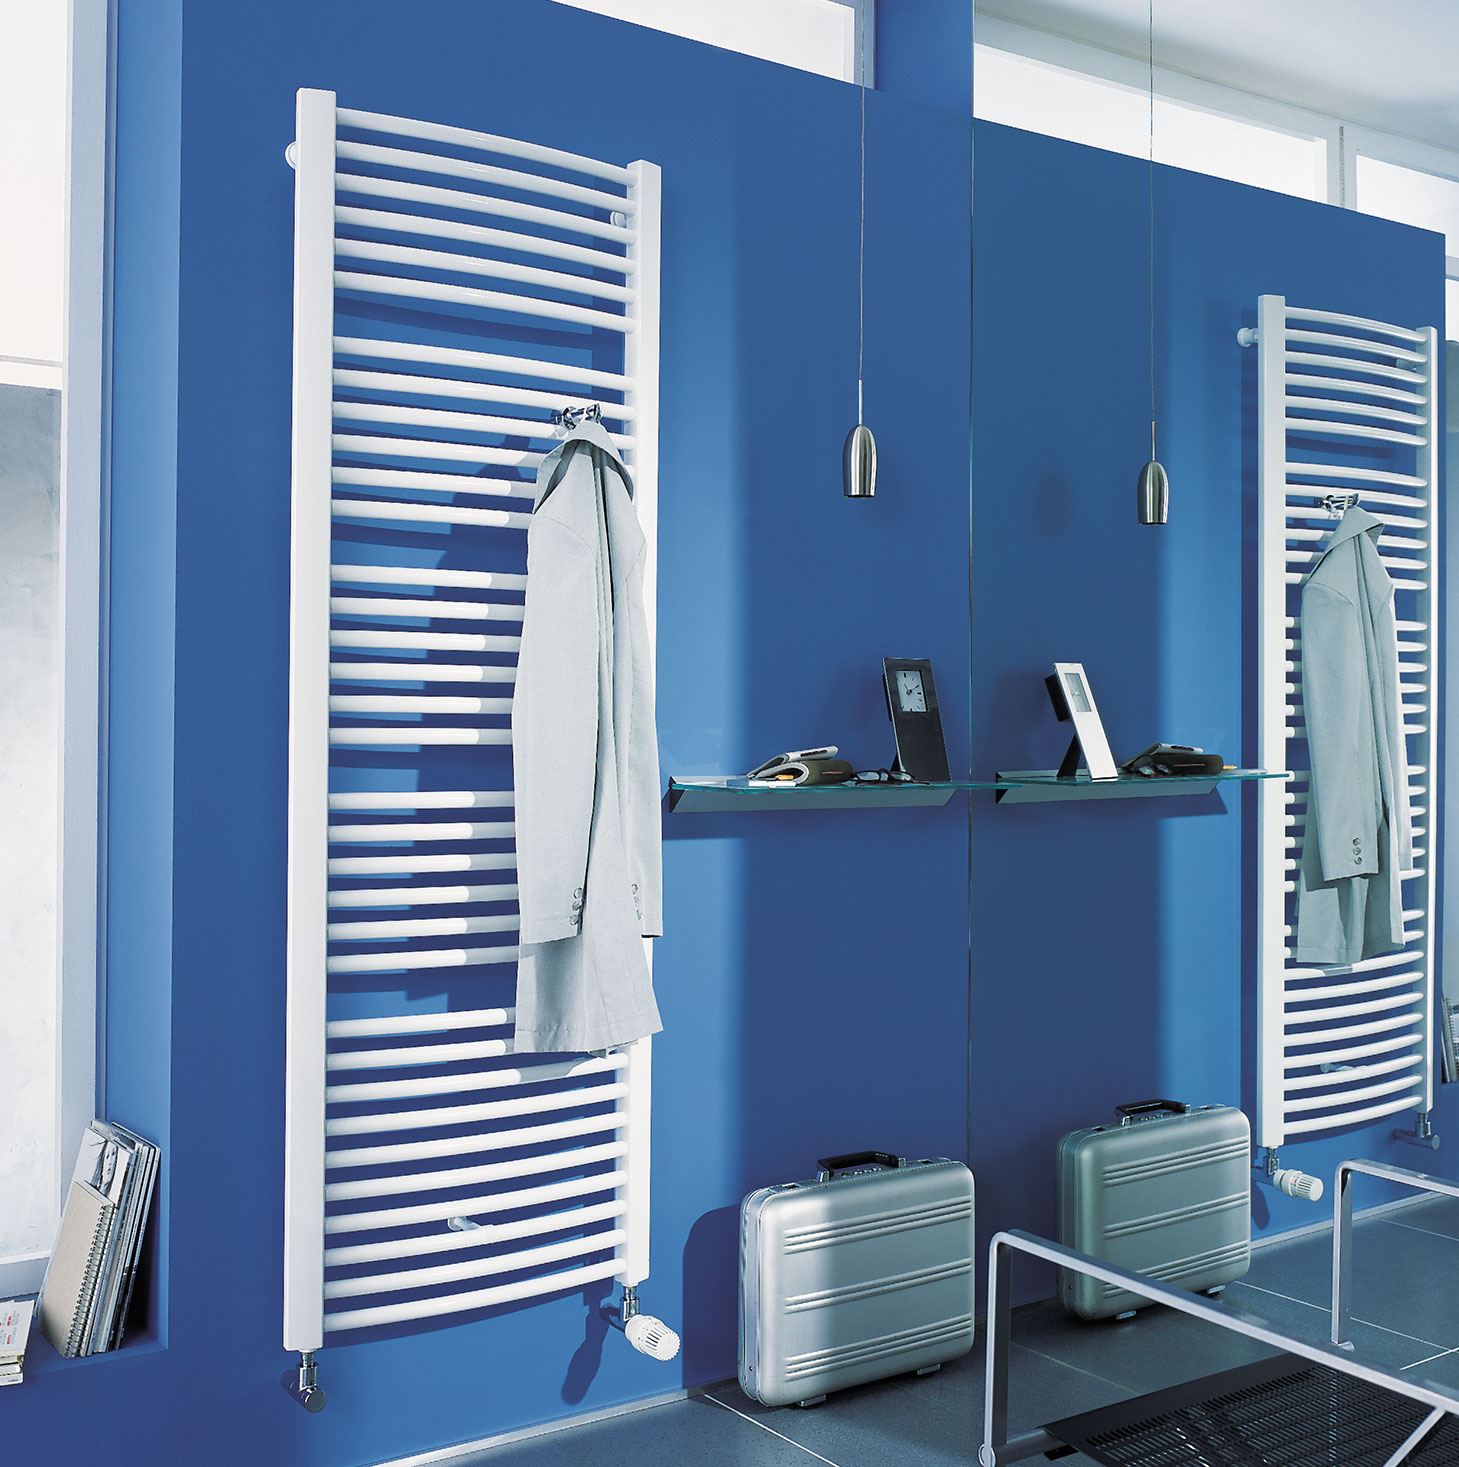 Example of a Kermi bathroom and design radiator